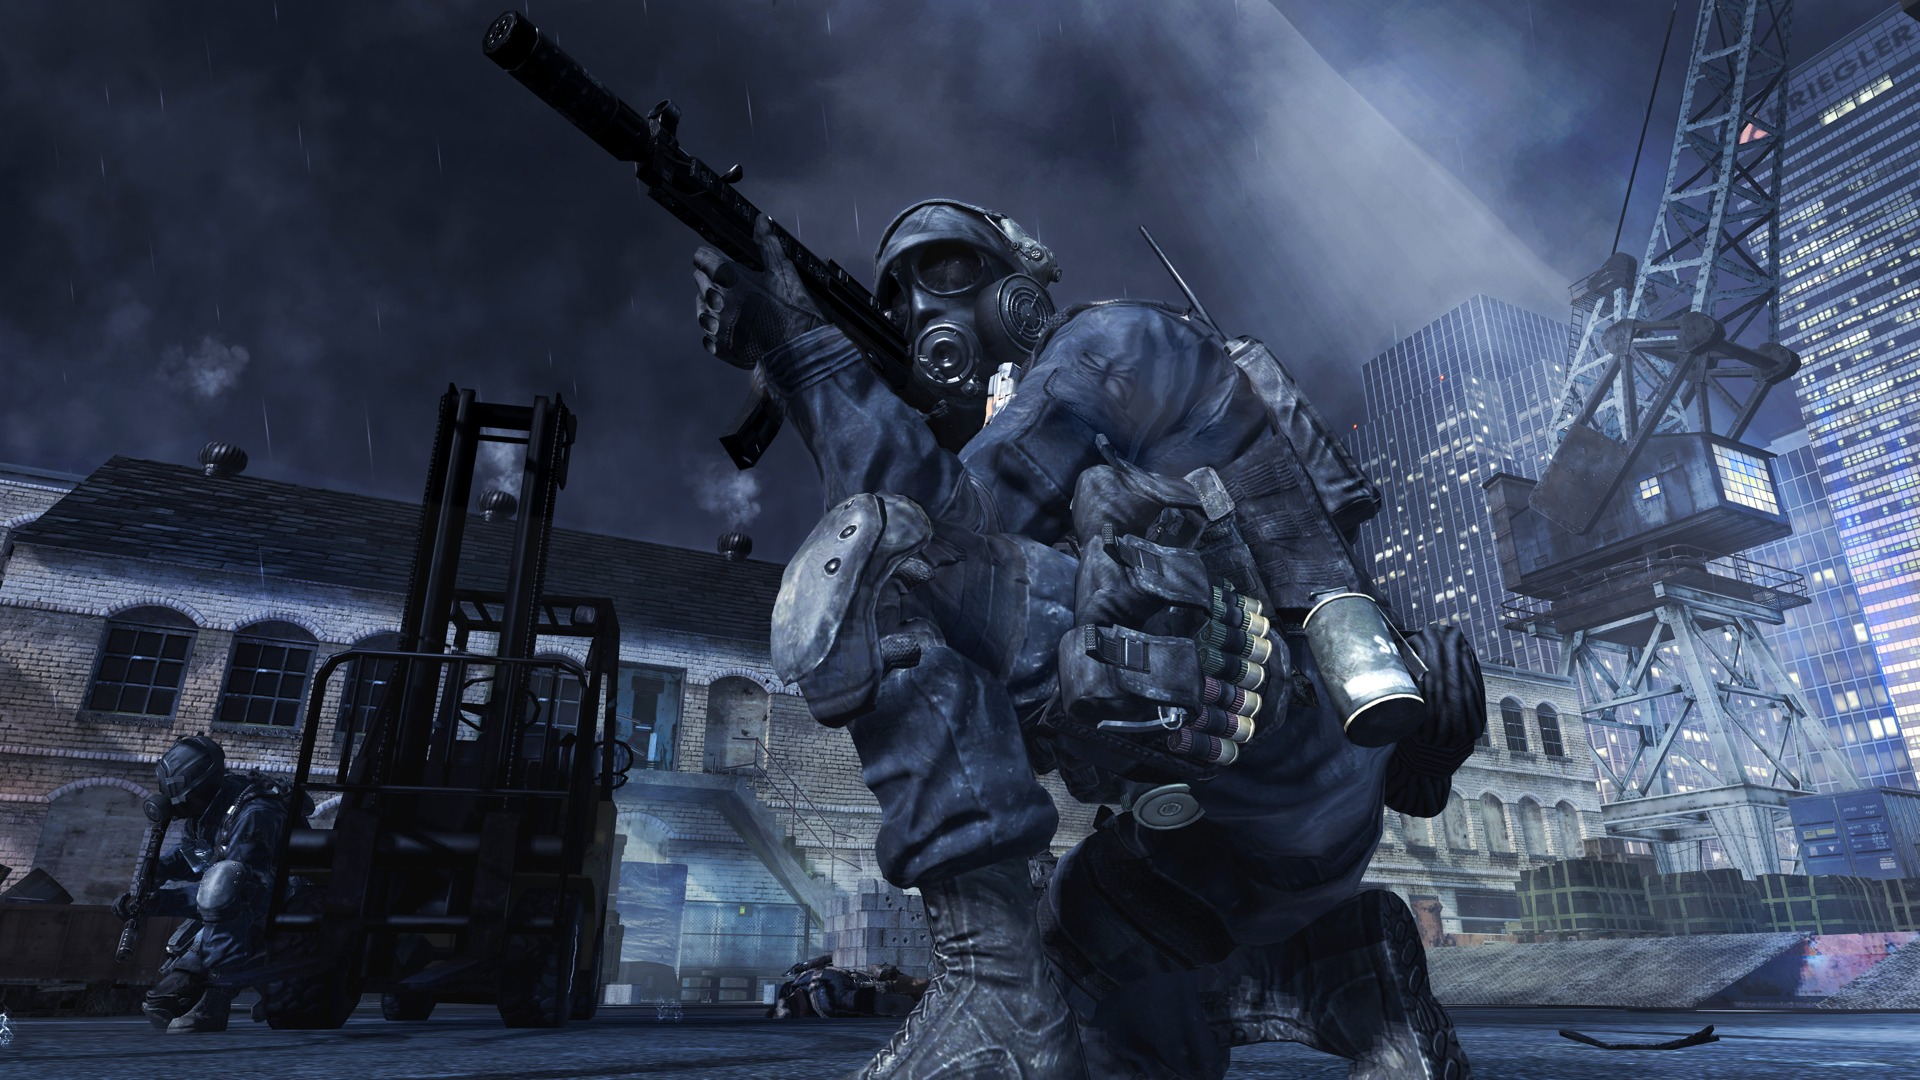 call of duty black ops 3 zombies maps with File Sas Mw3 on Content Collection 1 likewise Coalescence Corporation moreover 5 Official Concept Art Images For Advanced Warfare Reckoning Dlc also File Seraph BO3 additionally Underpass.